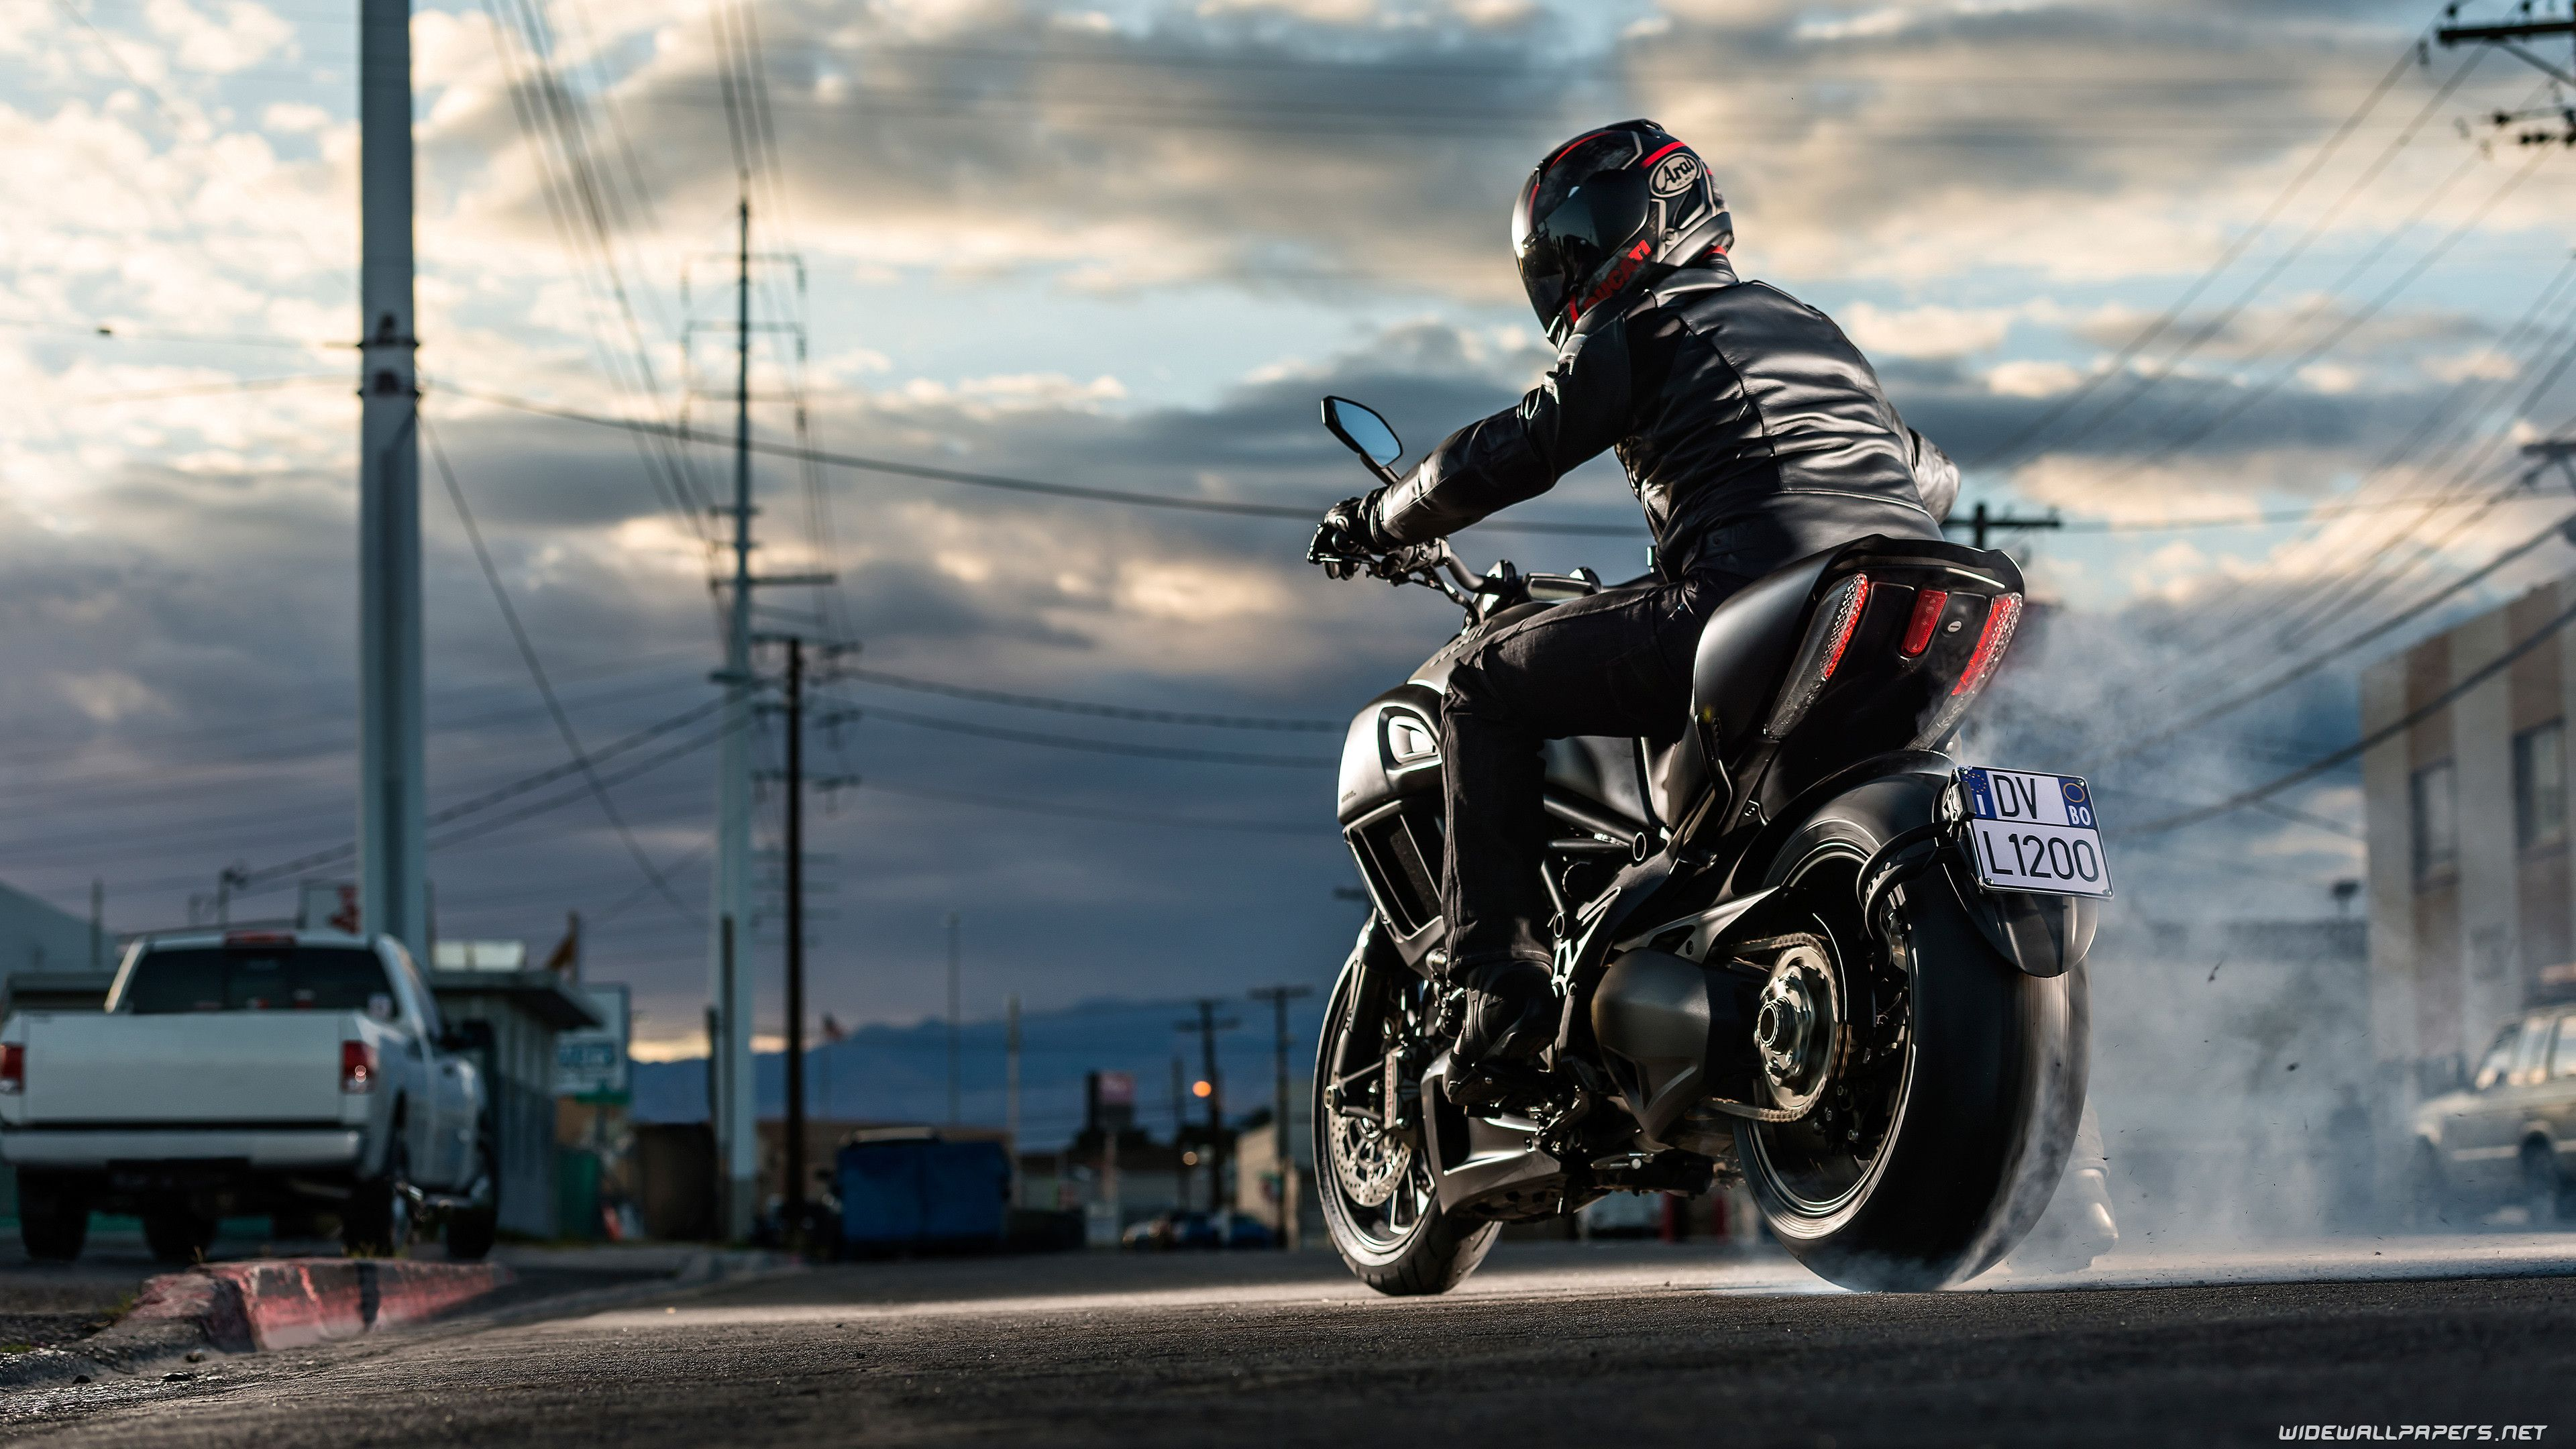 4k Motorcycle Wallpapers Top Free 4k Motorcycle Backgrounds Wallpaperaccess